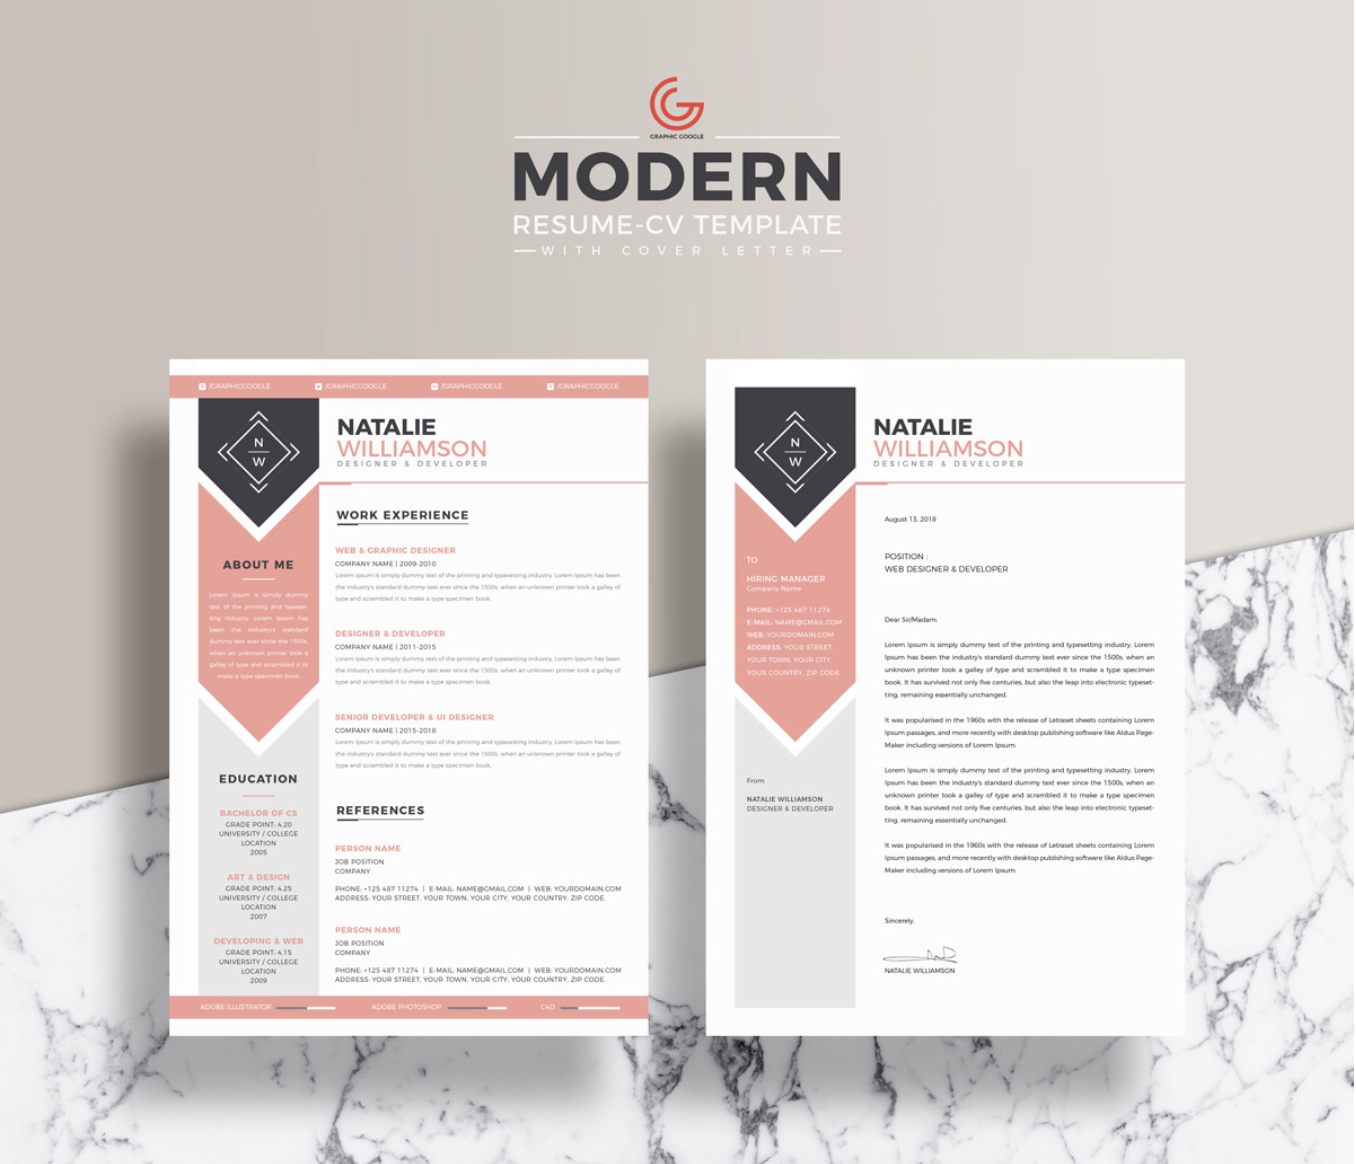 8 Lets Get Modern With This Crisp Clean Design